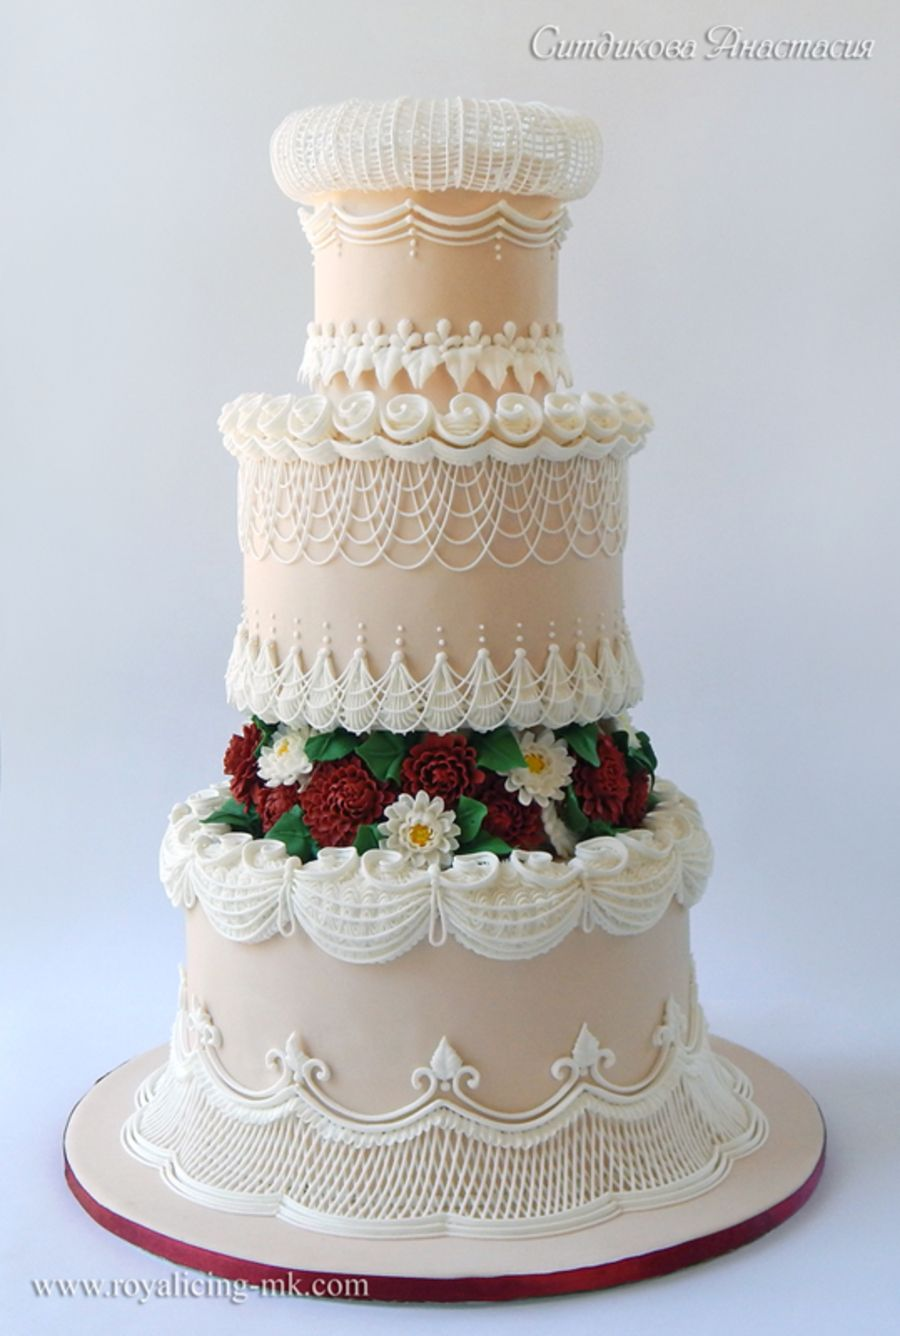 wedding cakes with royal icing royal icing lambeth nirvana royal icing collars 26112